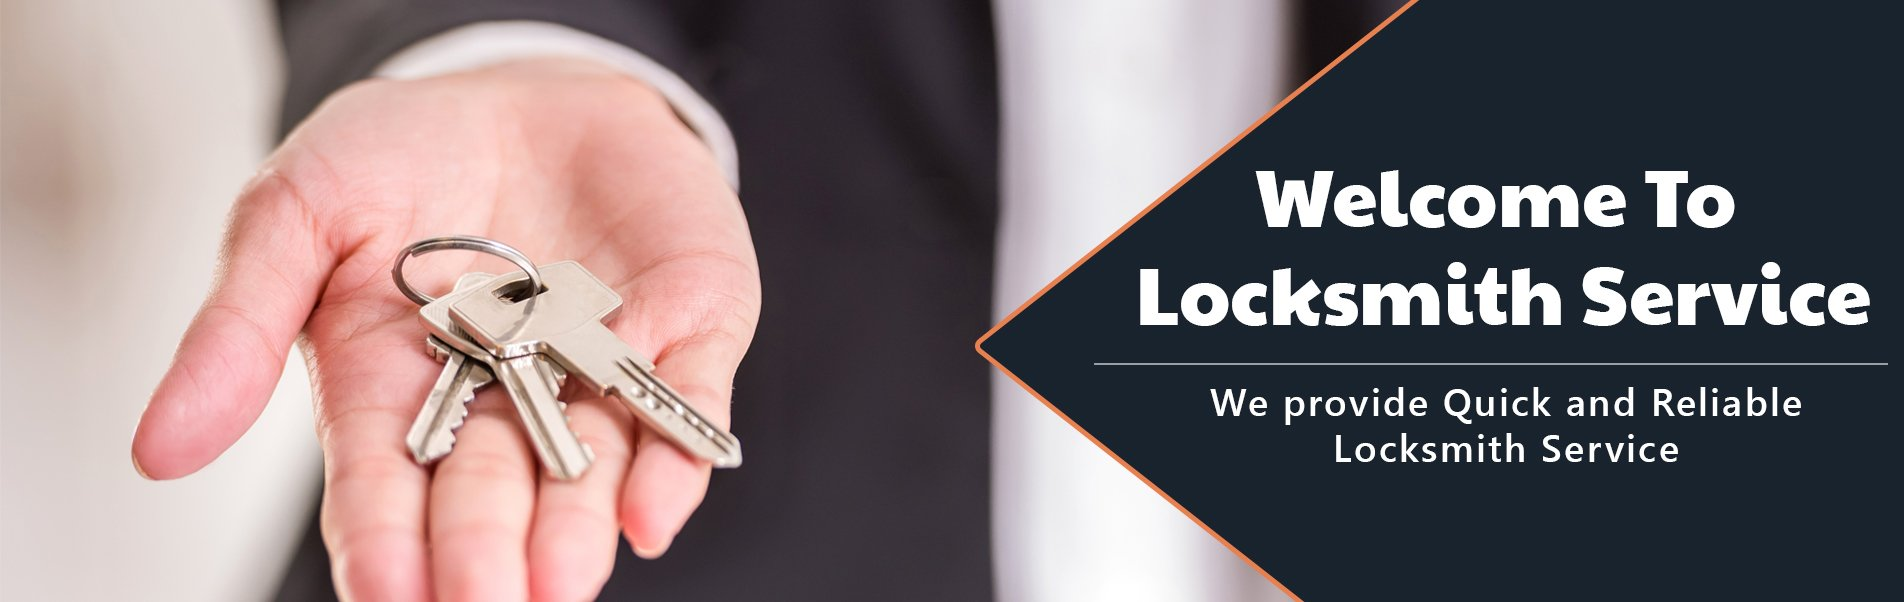 Hinsdale Locksmith Store, Hinsdale, IL 847-597-6215